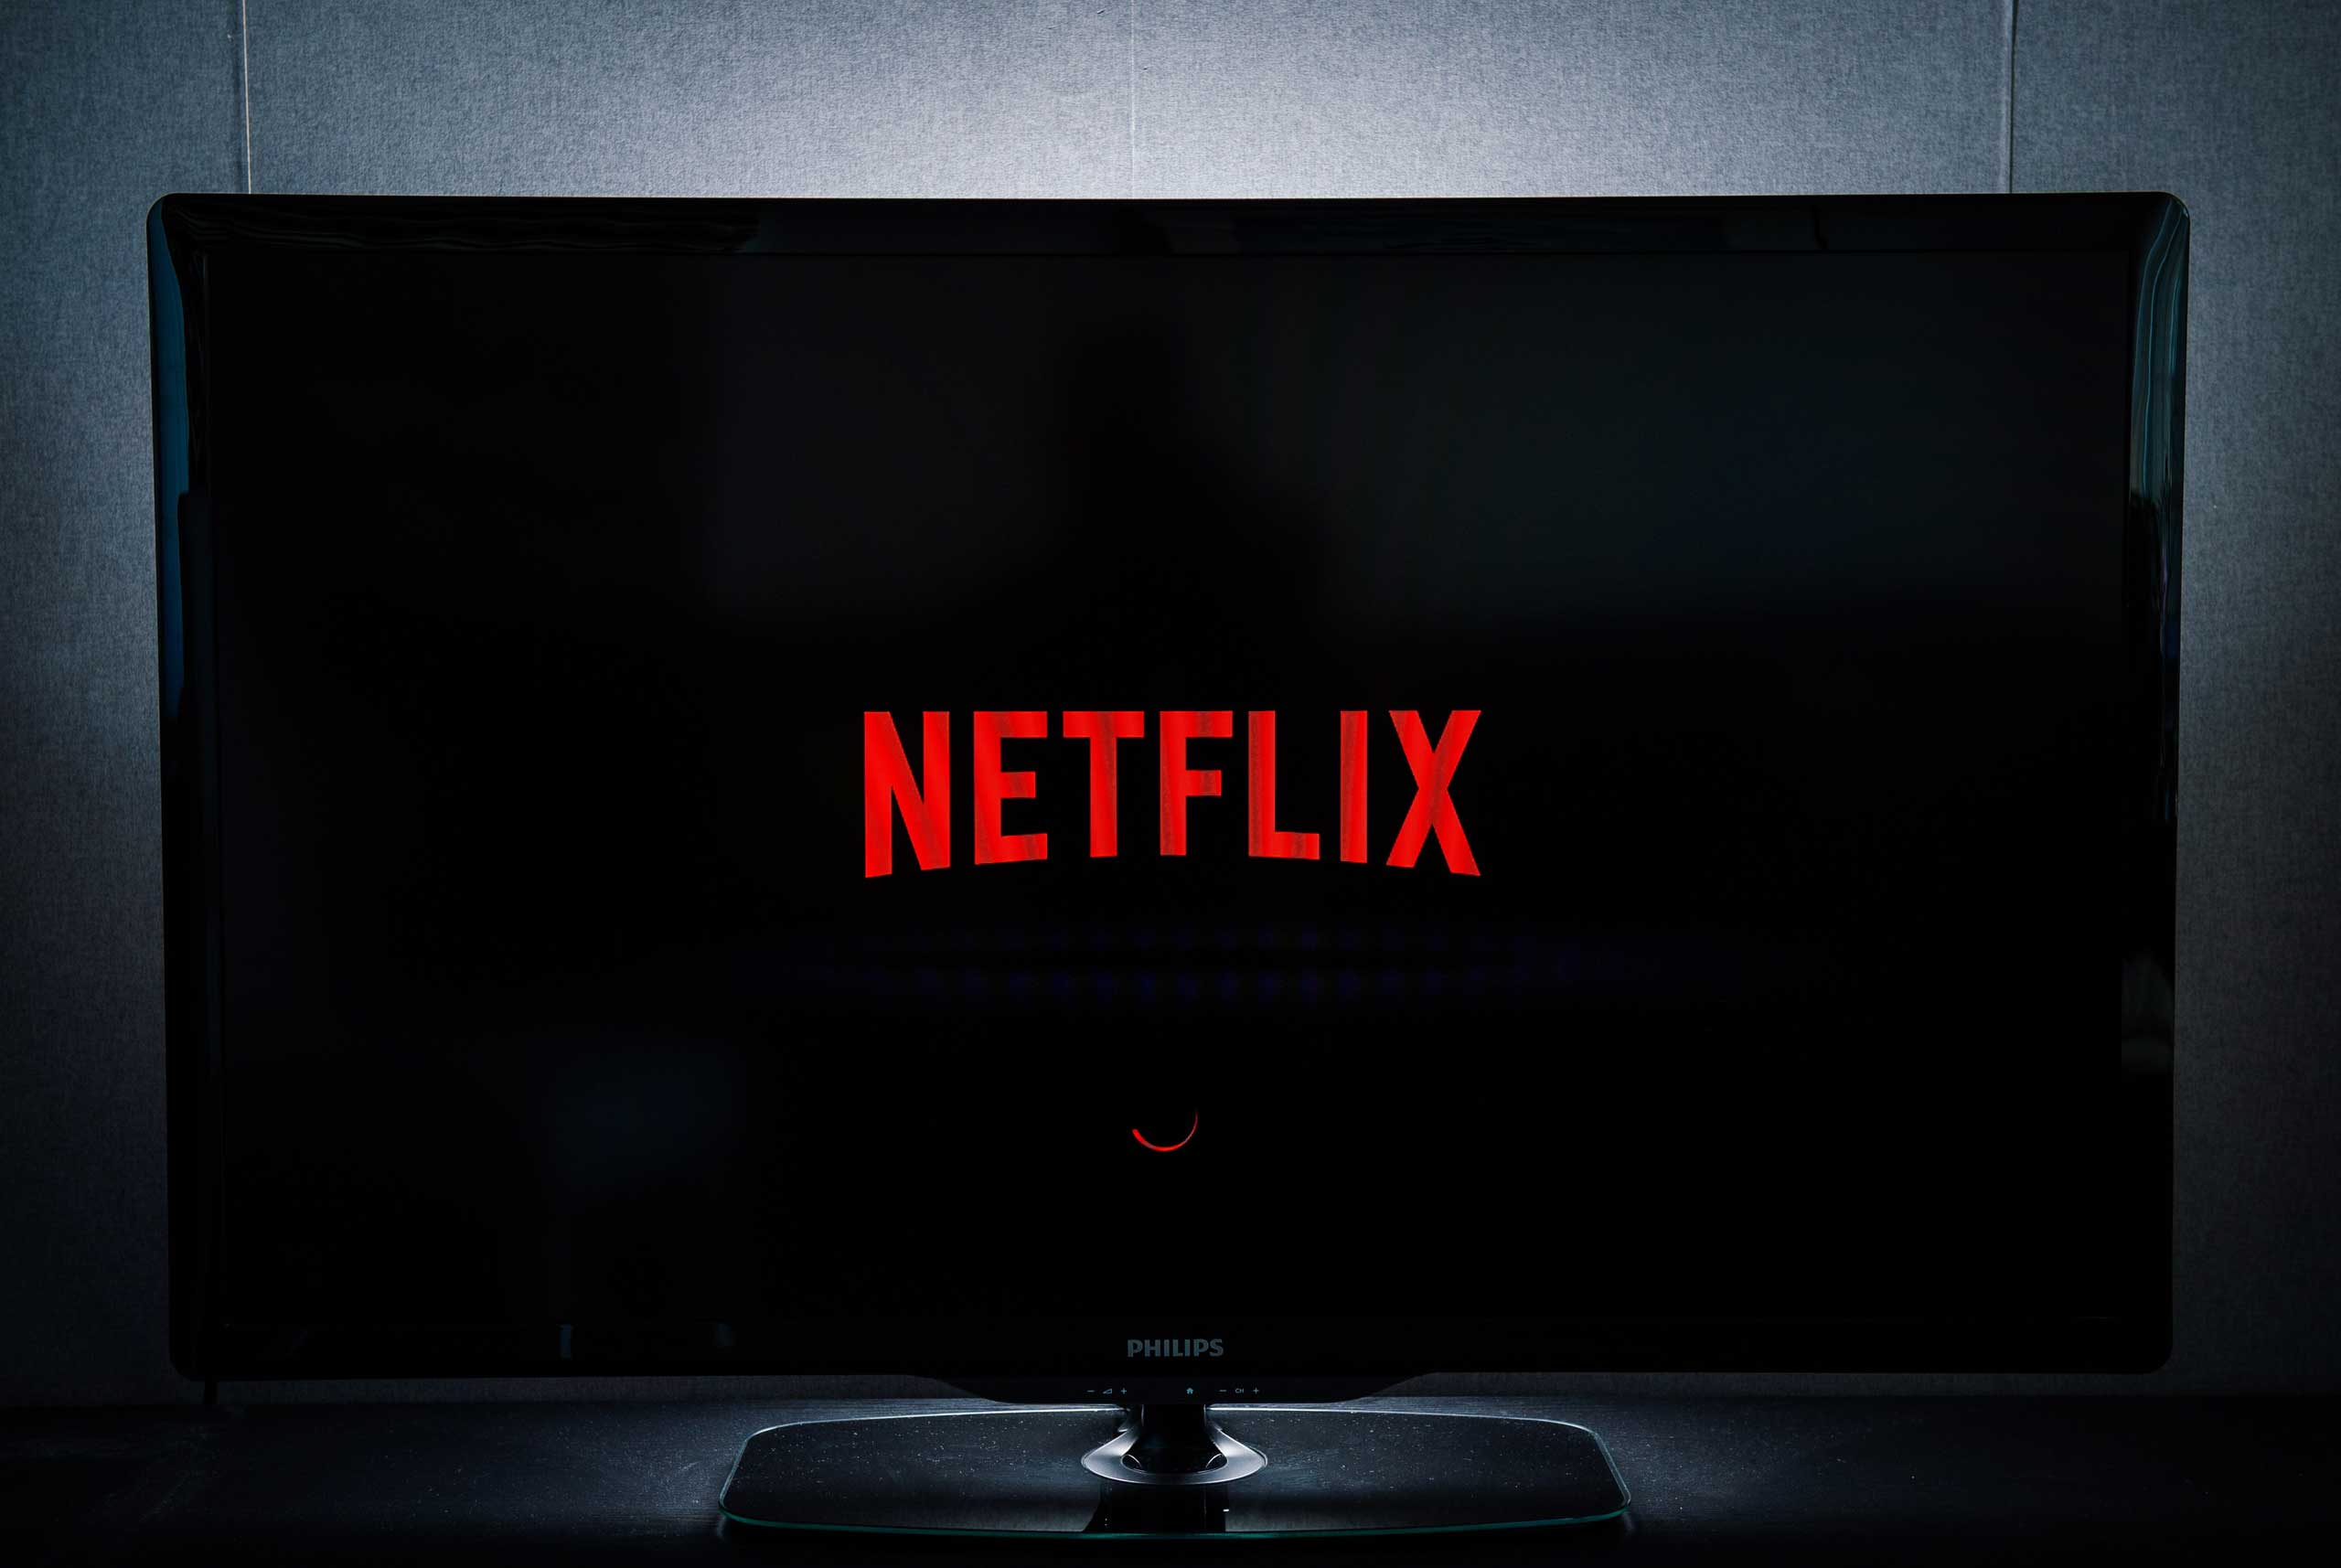 Picture taken on September 11, 2014 to illustrate the on-demand internet streaming media provider, Netflix, on the home video game console PlayStation 3.